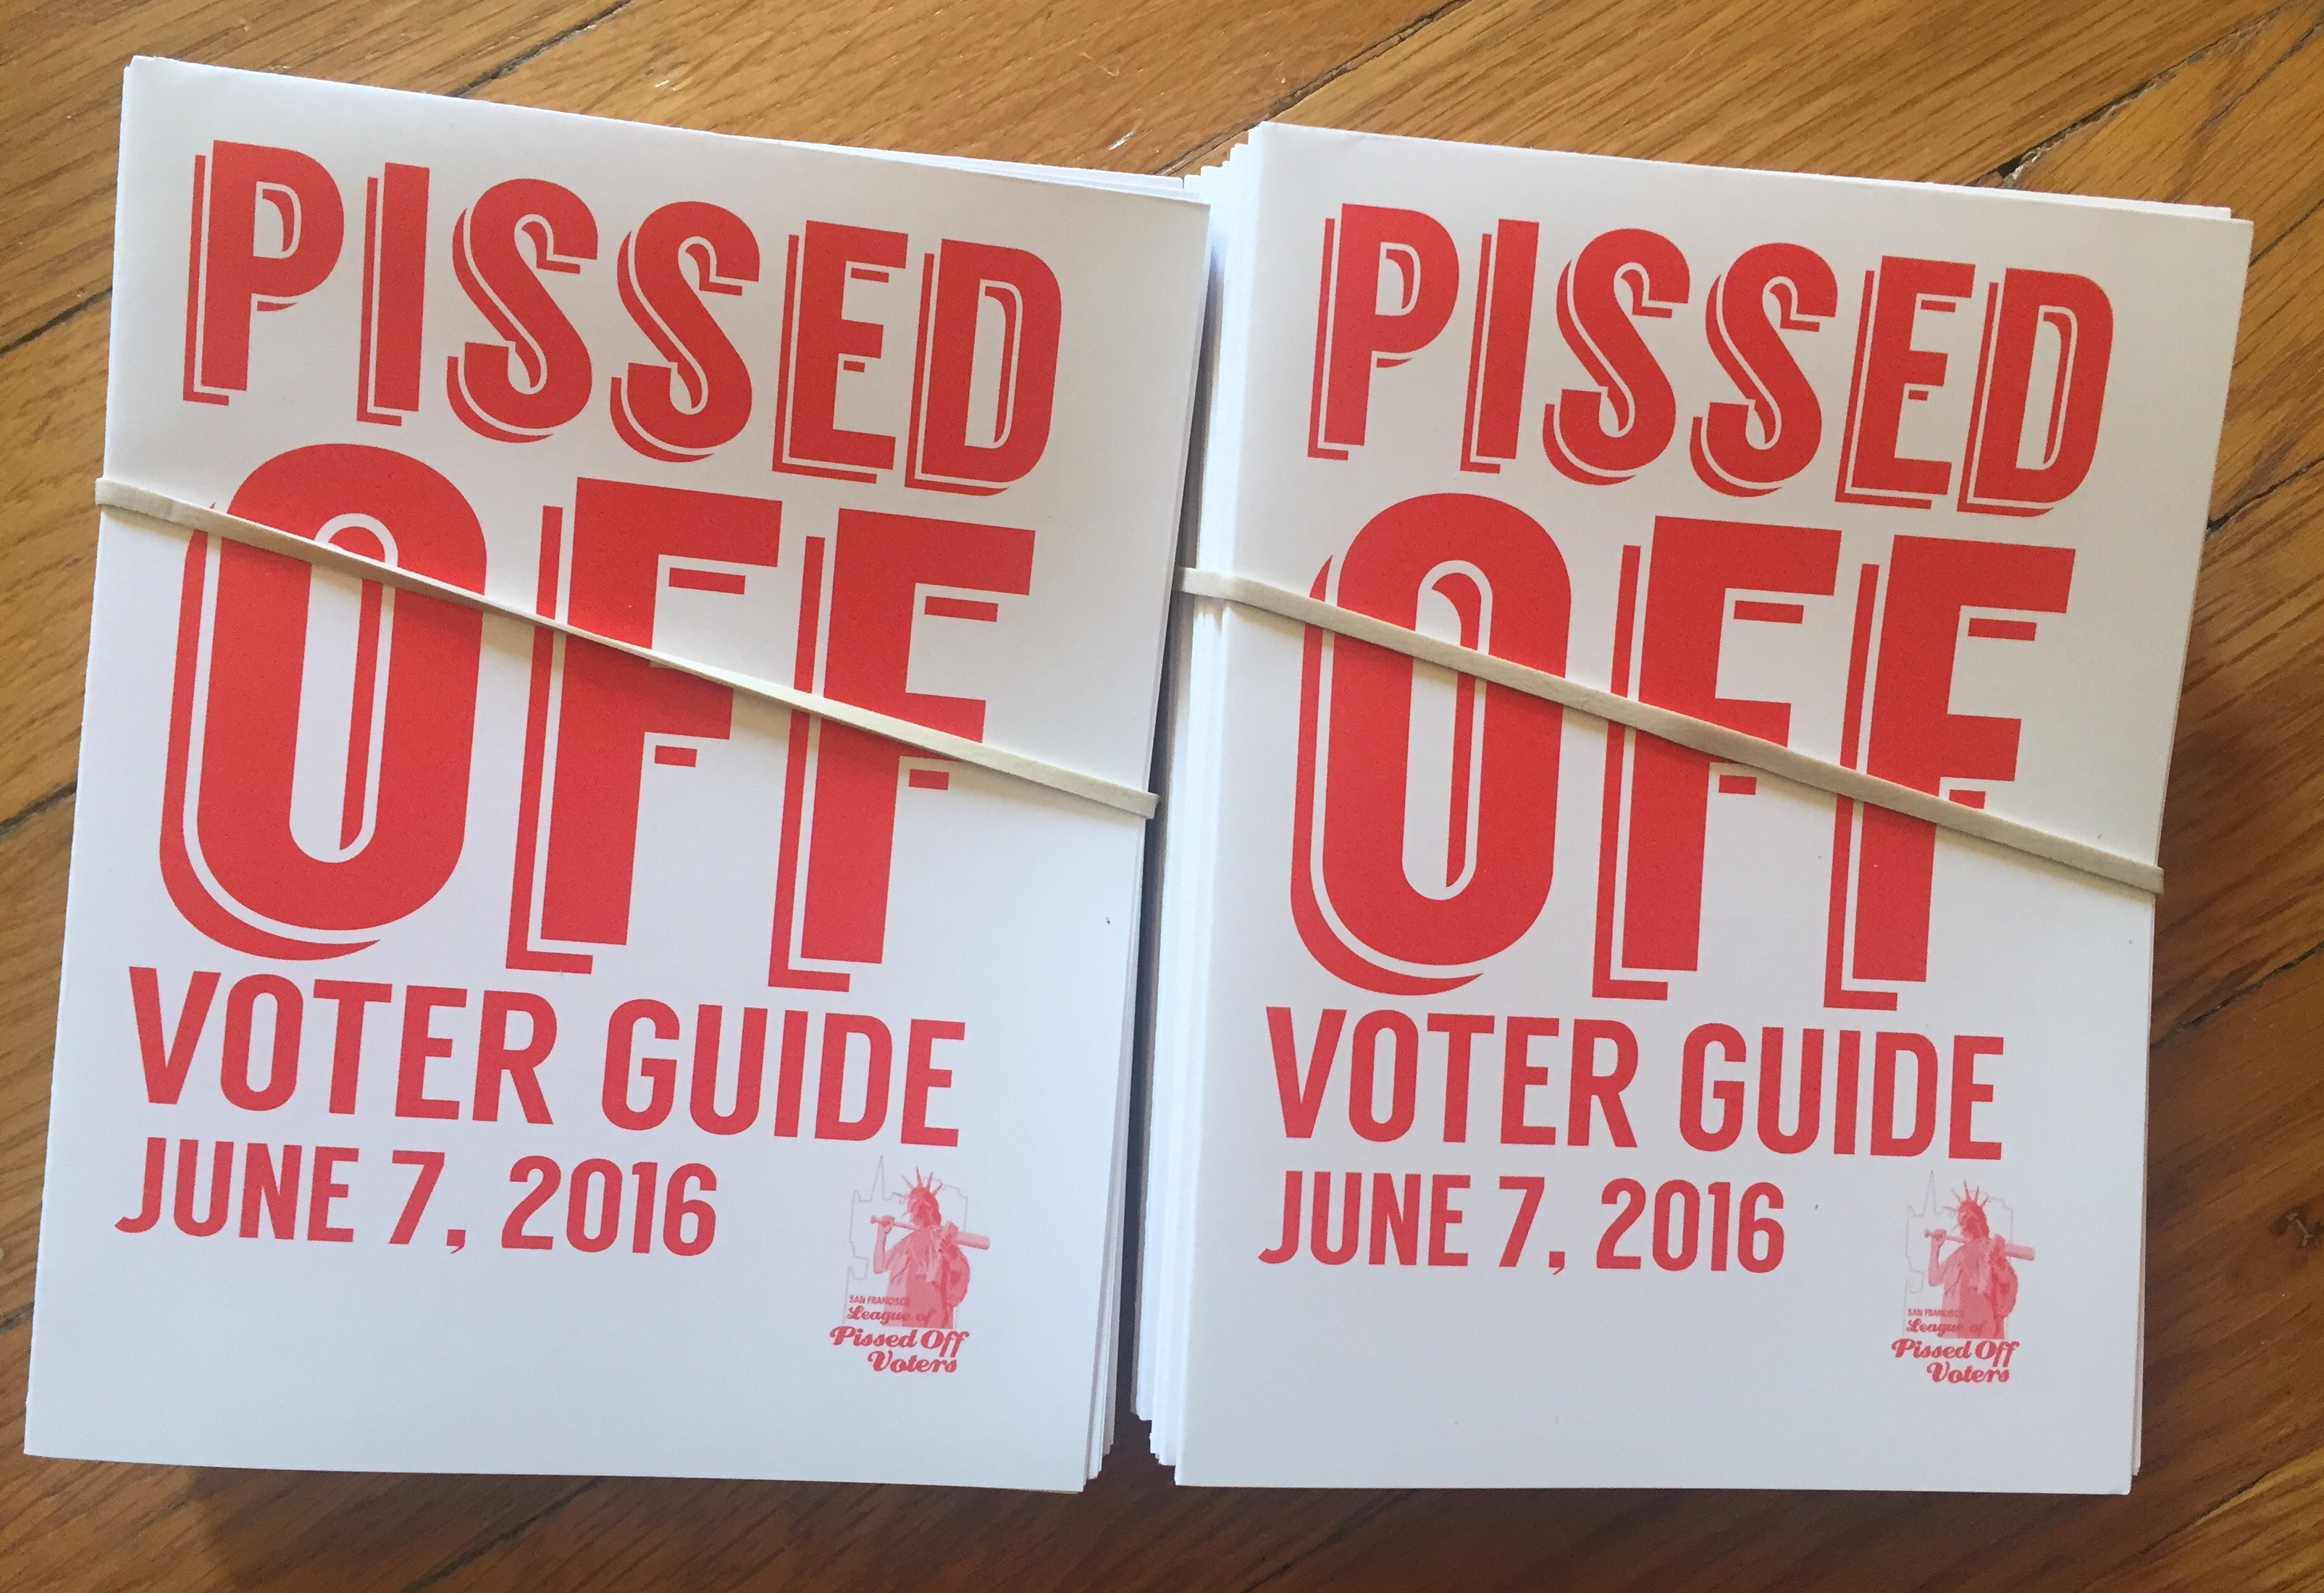 Pissed Off Voter Guide